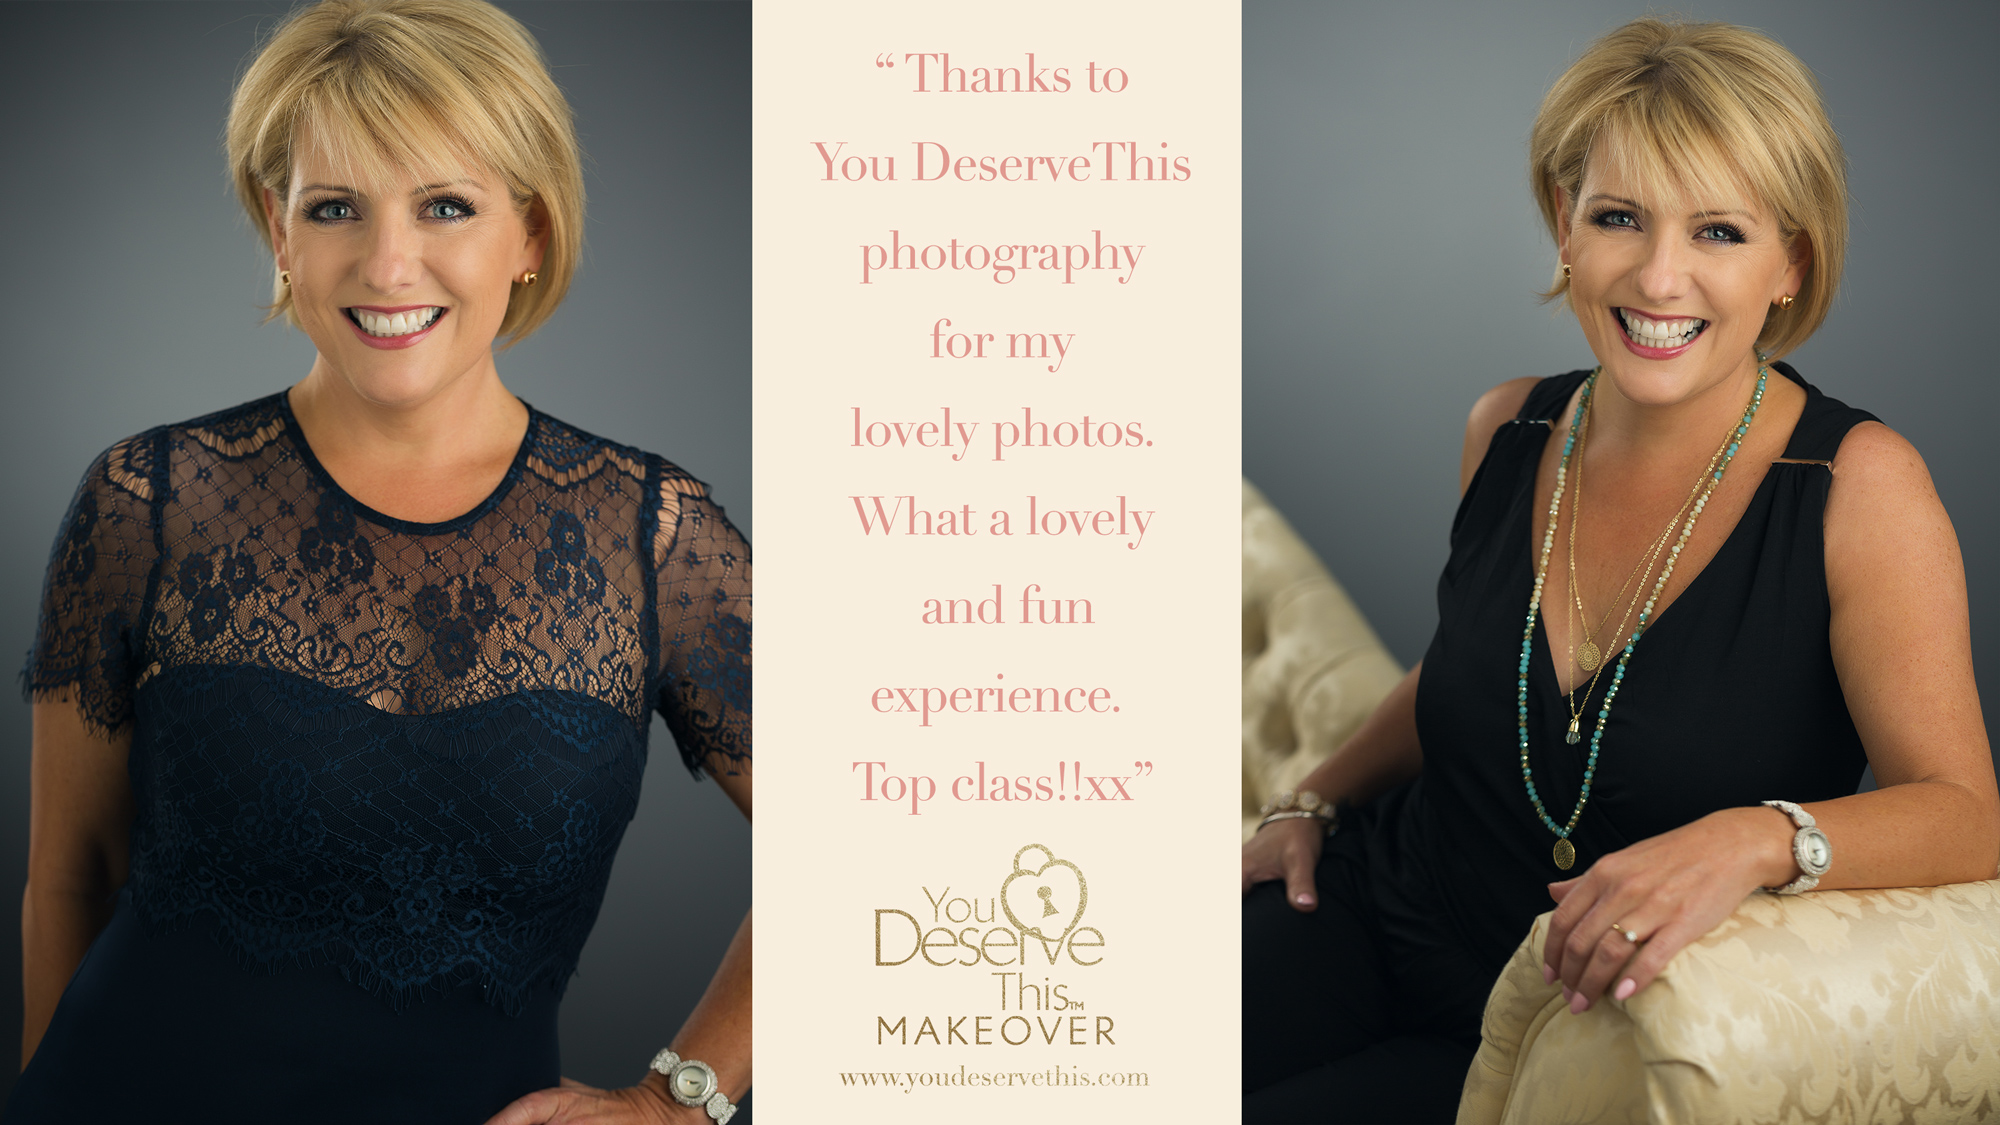 Thanks to You Deserve This photography for my lovely photos. What a lovely and fun experience. Top Class.  www.youdeservethis.com